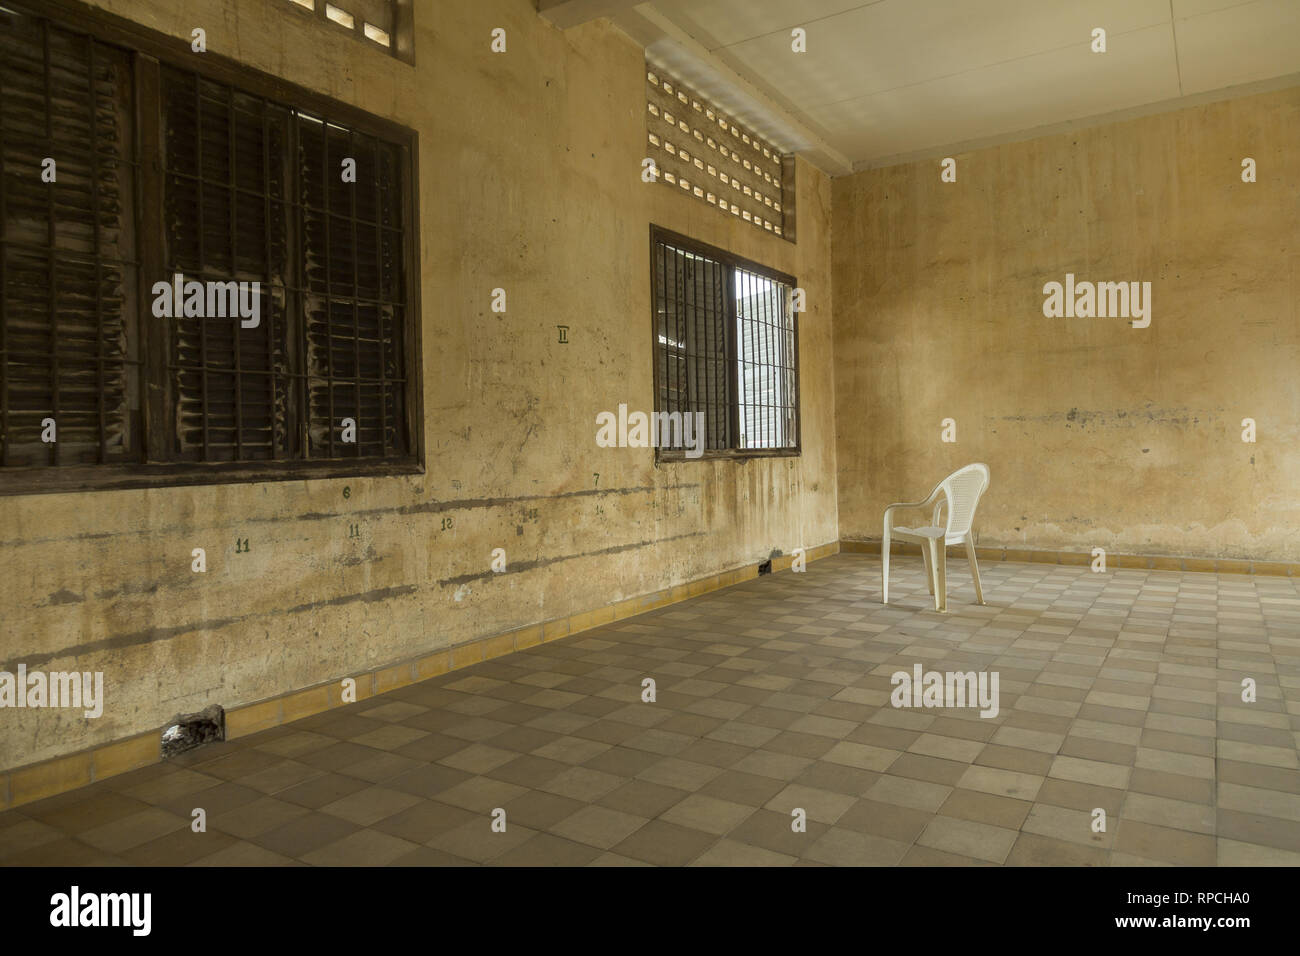 Red Khmer prison in Phnom Penh - Stock Image